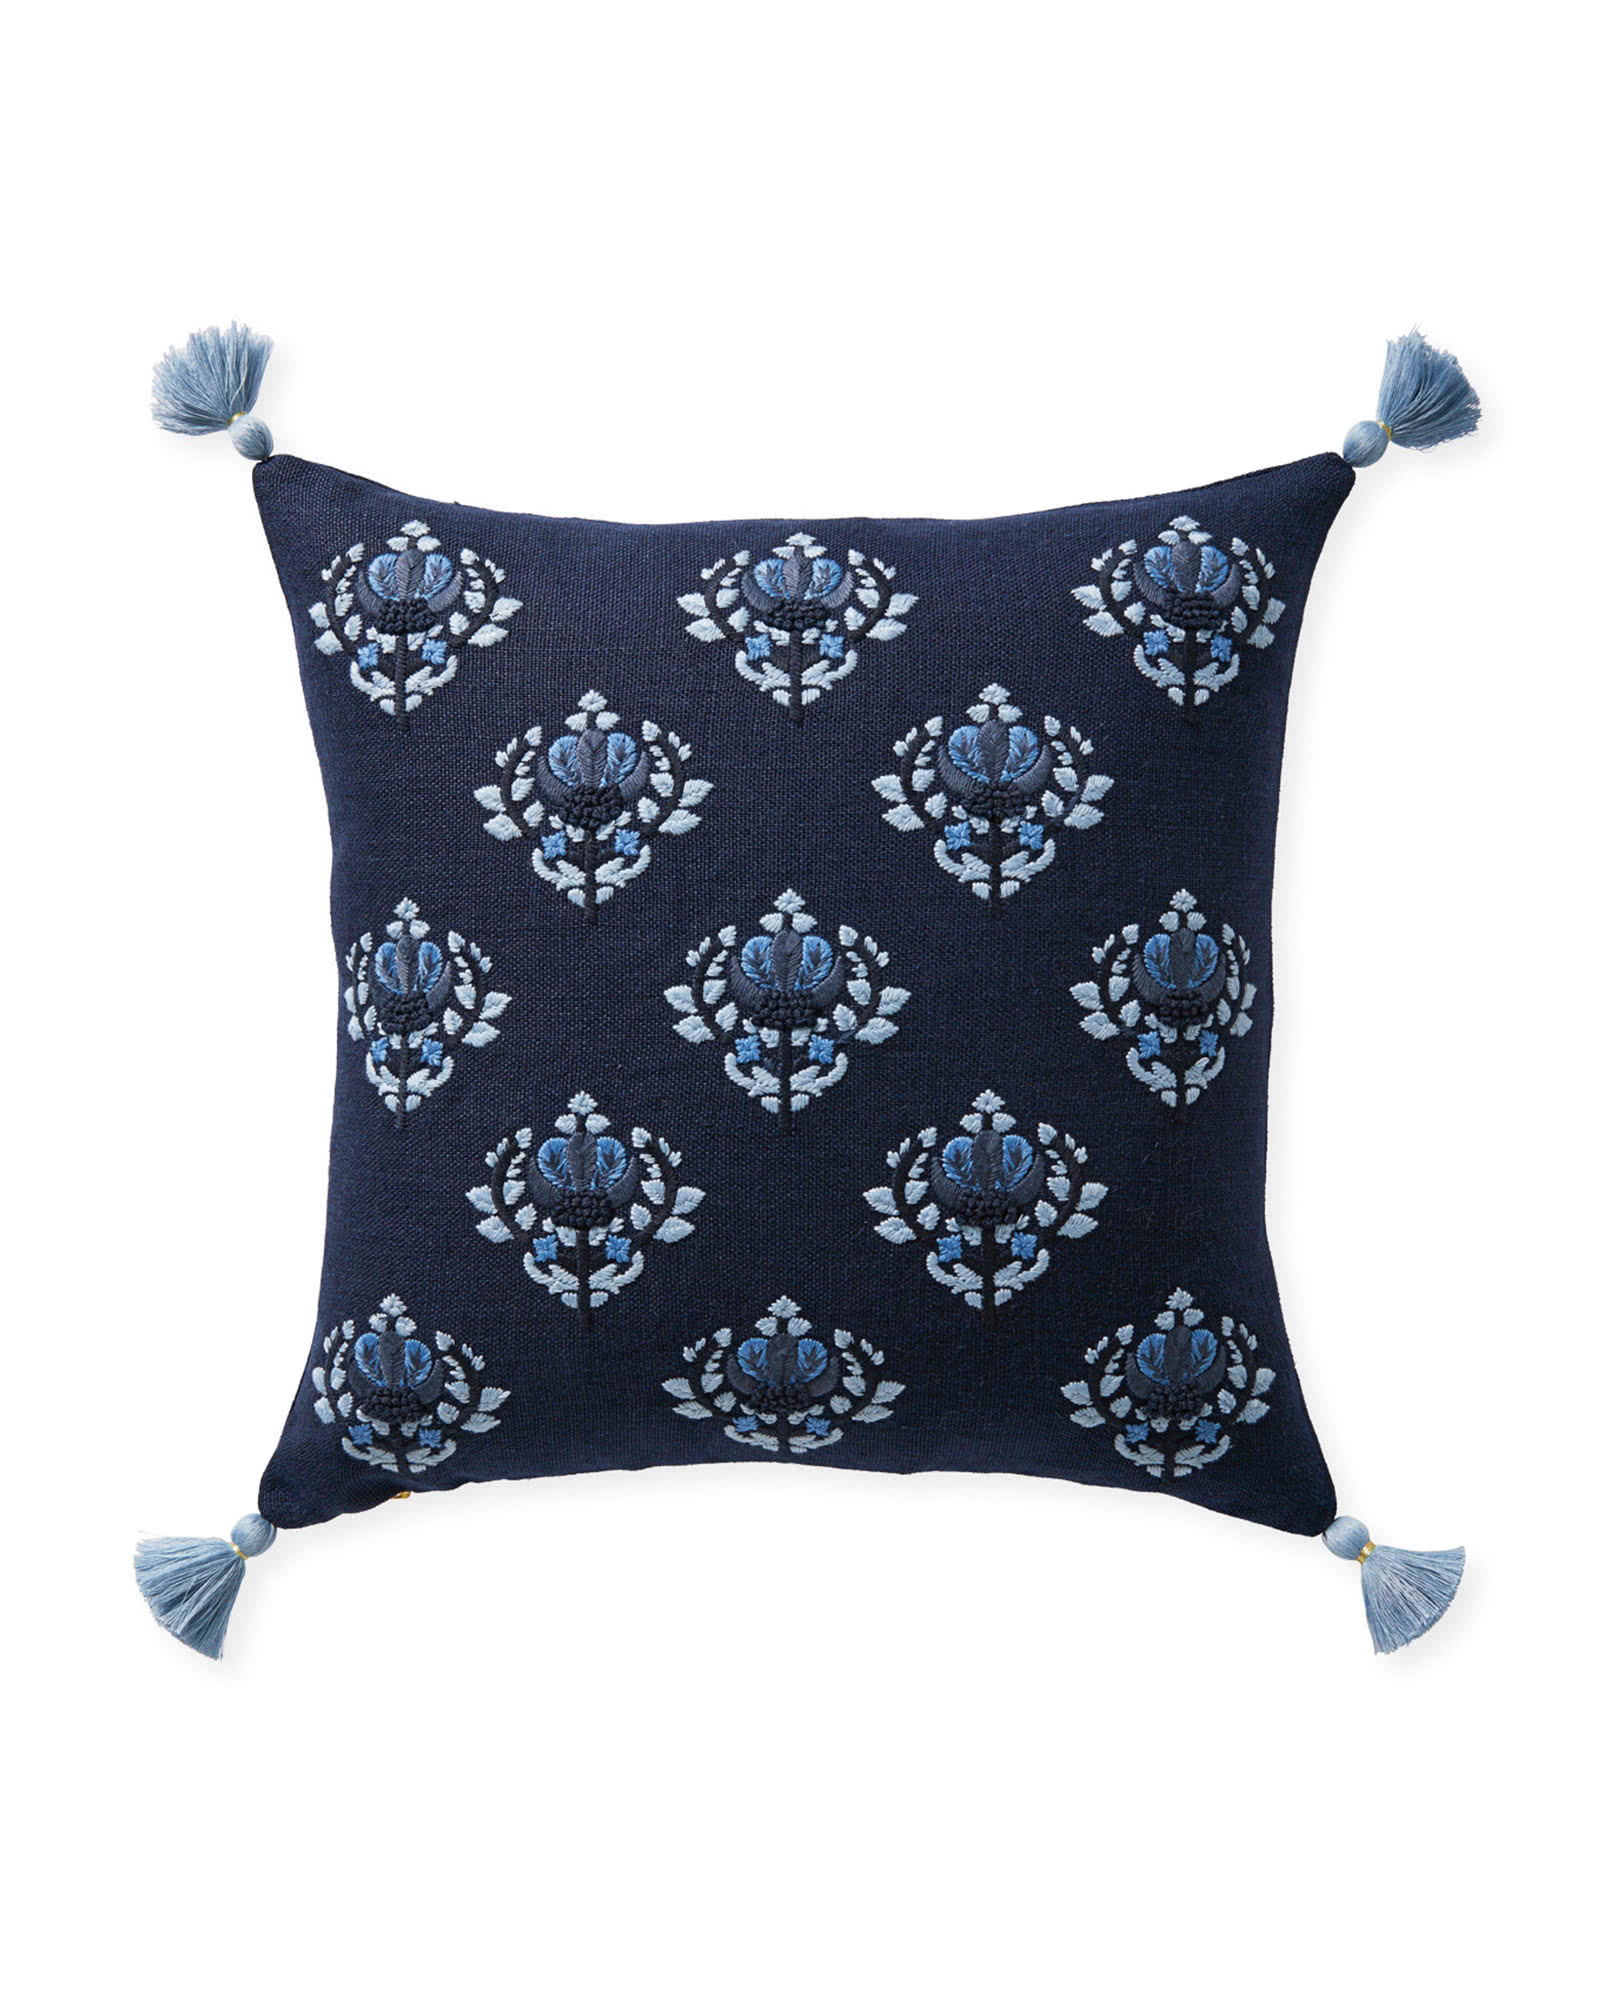 Best Stores For Throw Pillows Online